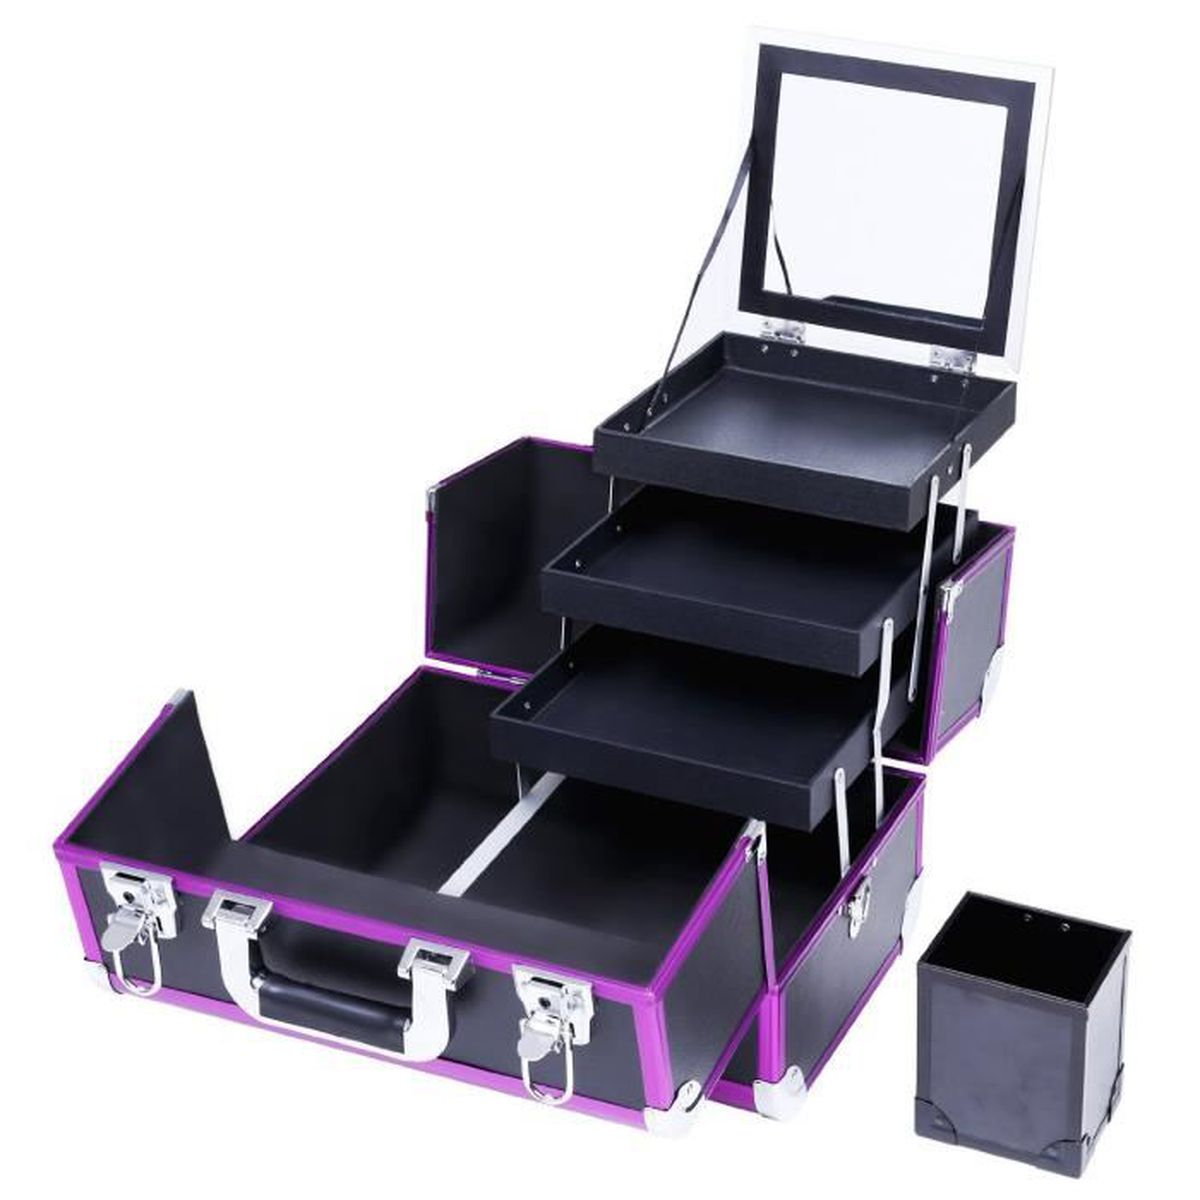 beauty case malette maquillage avec un miroir et 3. Black Bedroom Furniture Sets. Home Design Ideas